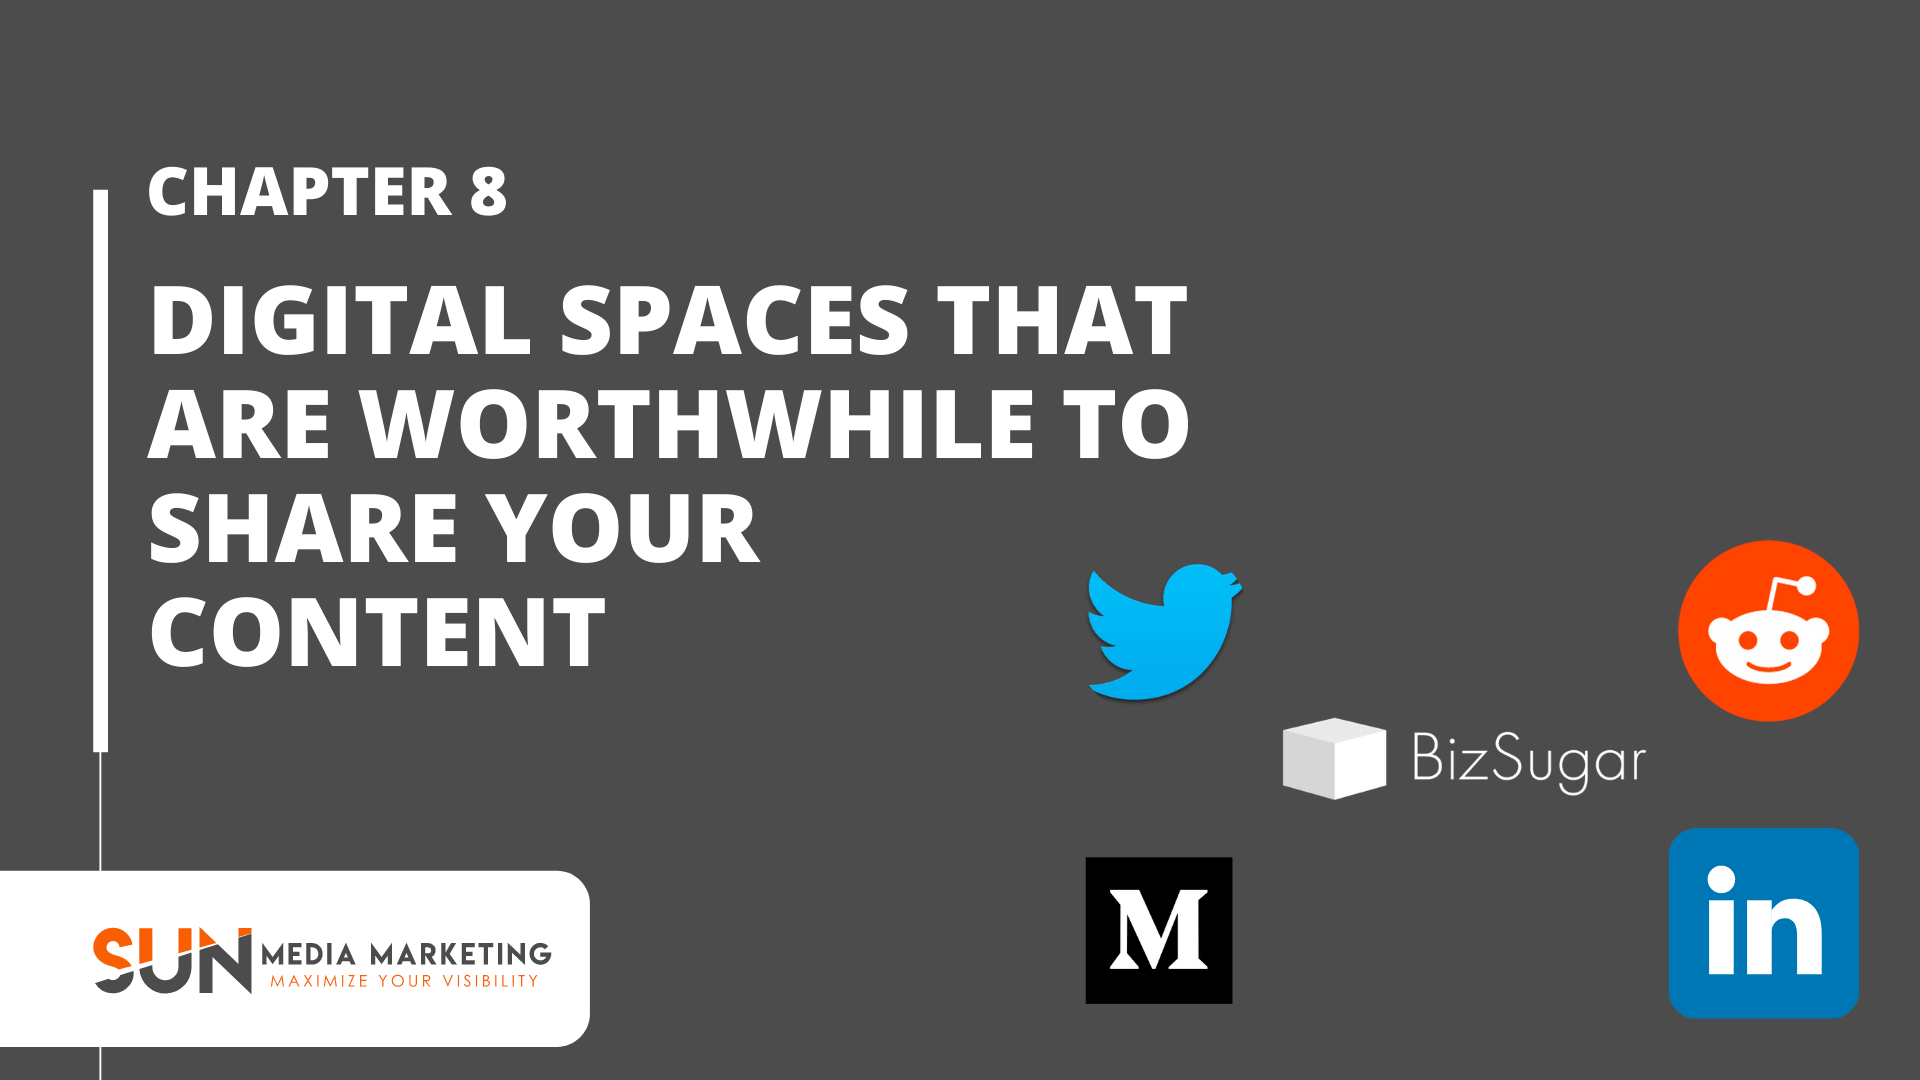 Digital Spaces that are worthwhile to share your content